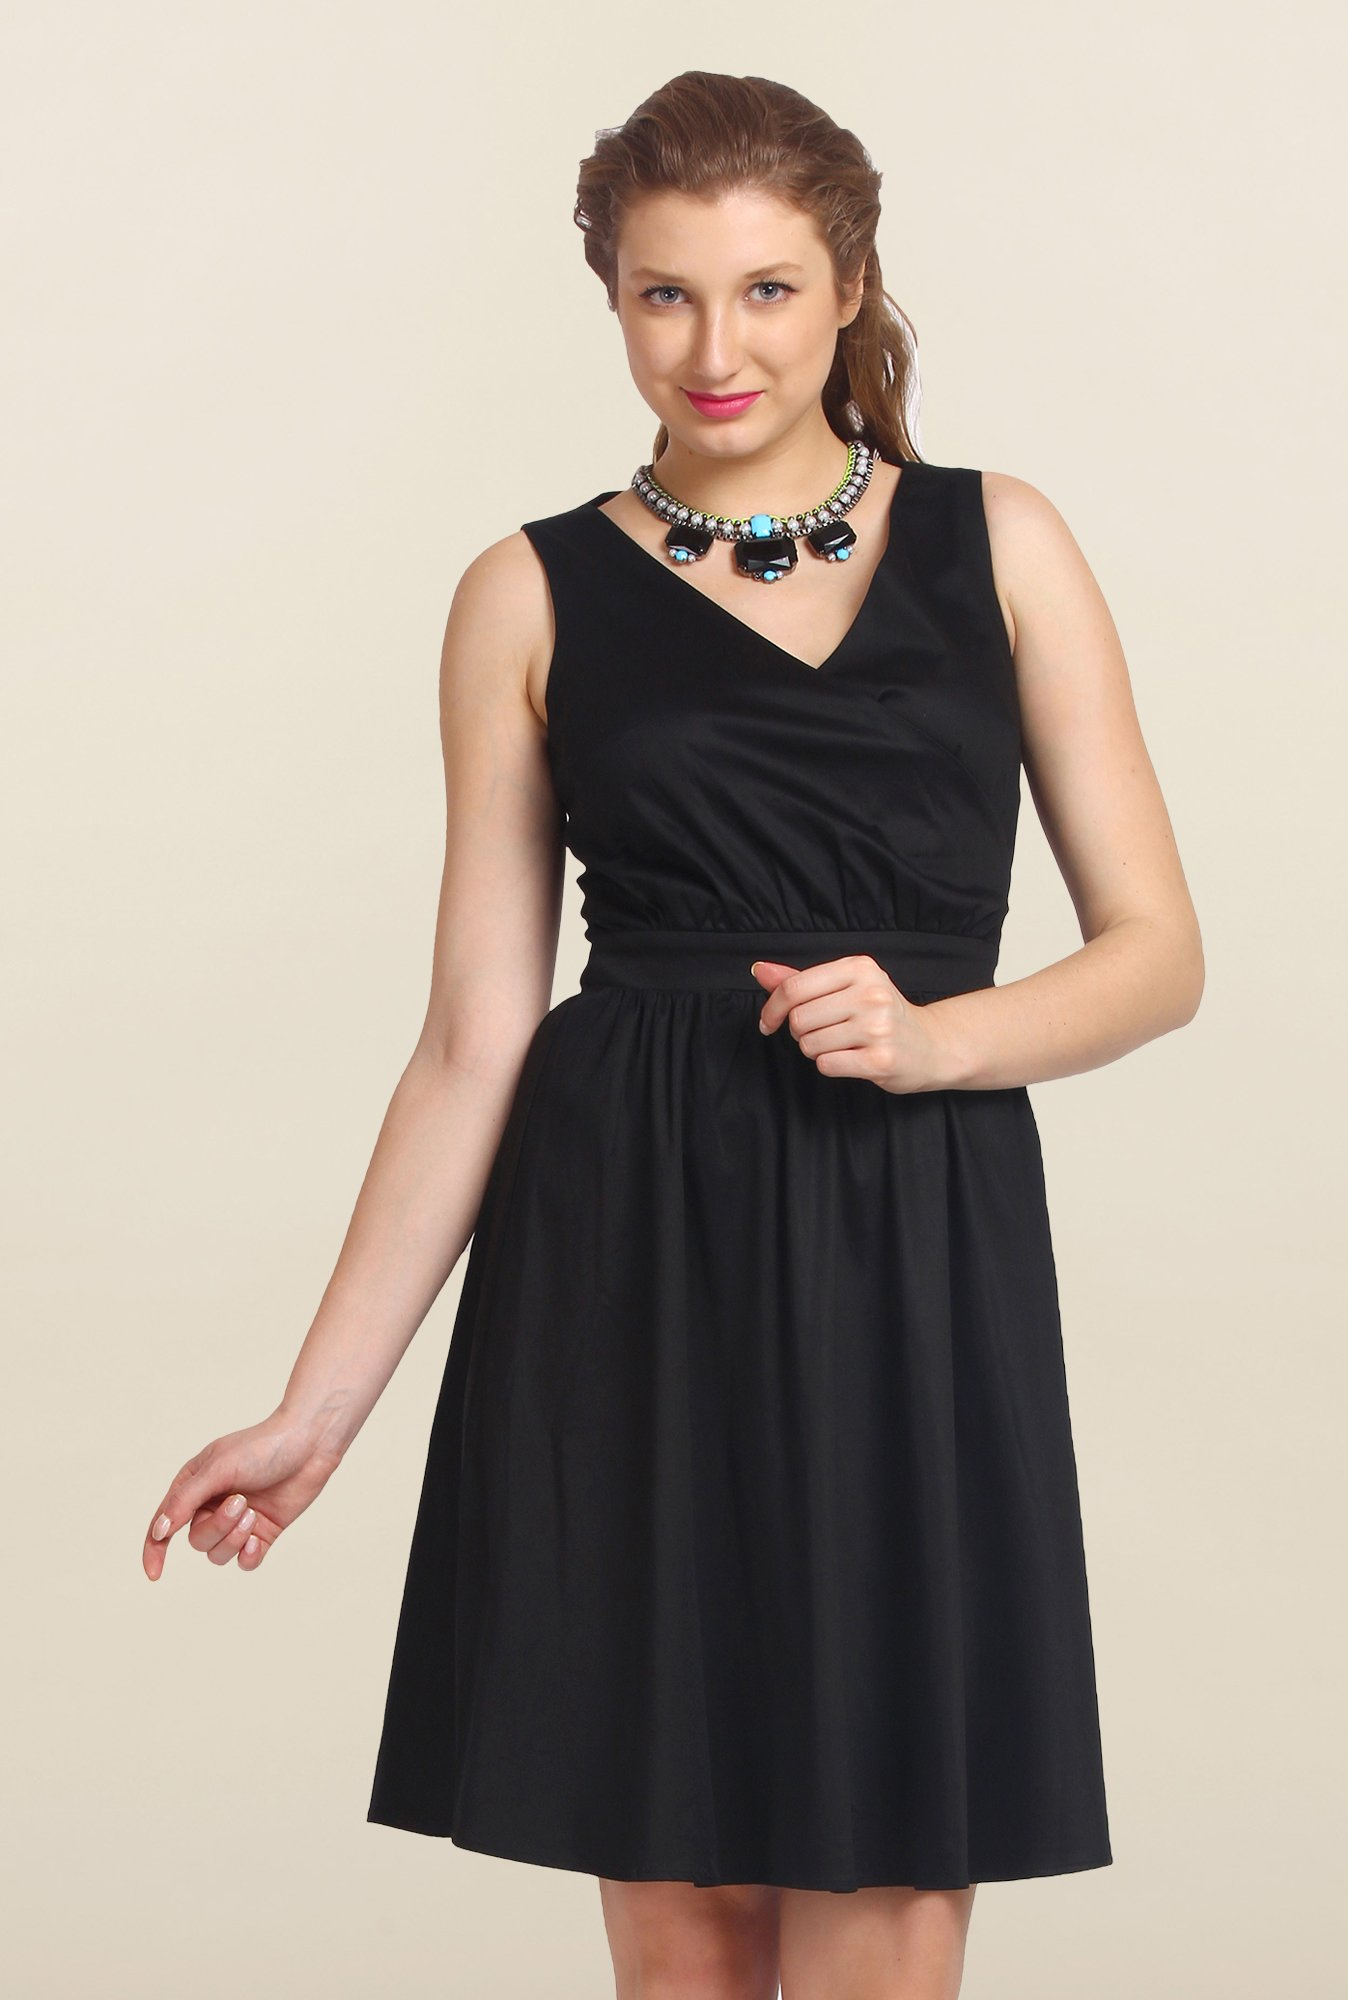 Avirate Black Solid Casual A-Line Dress